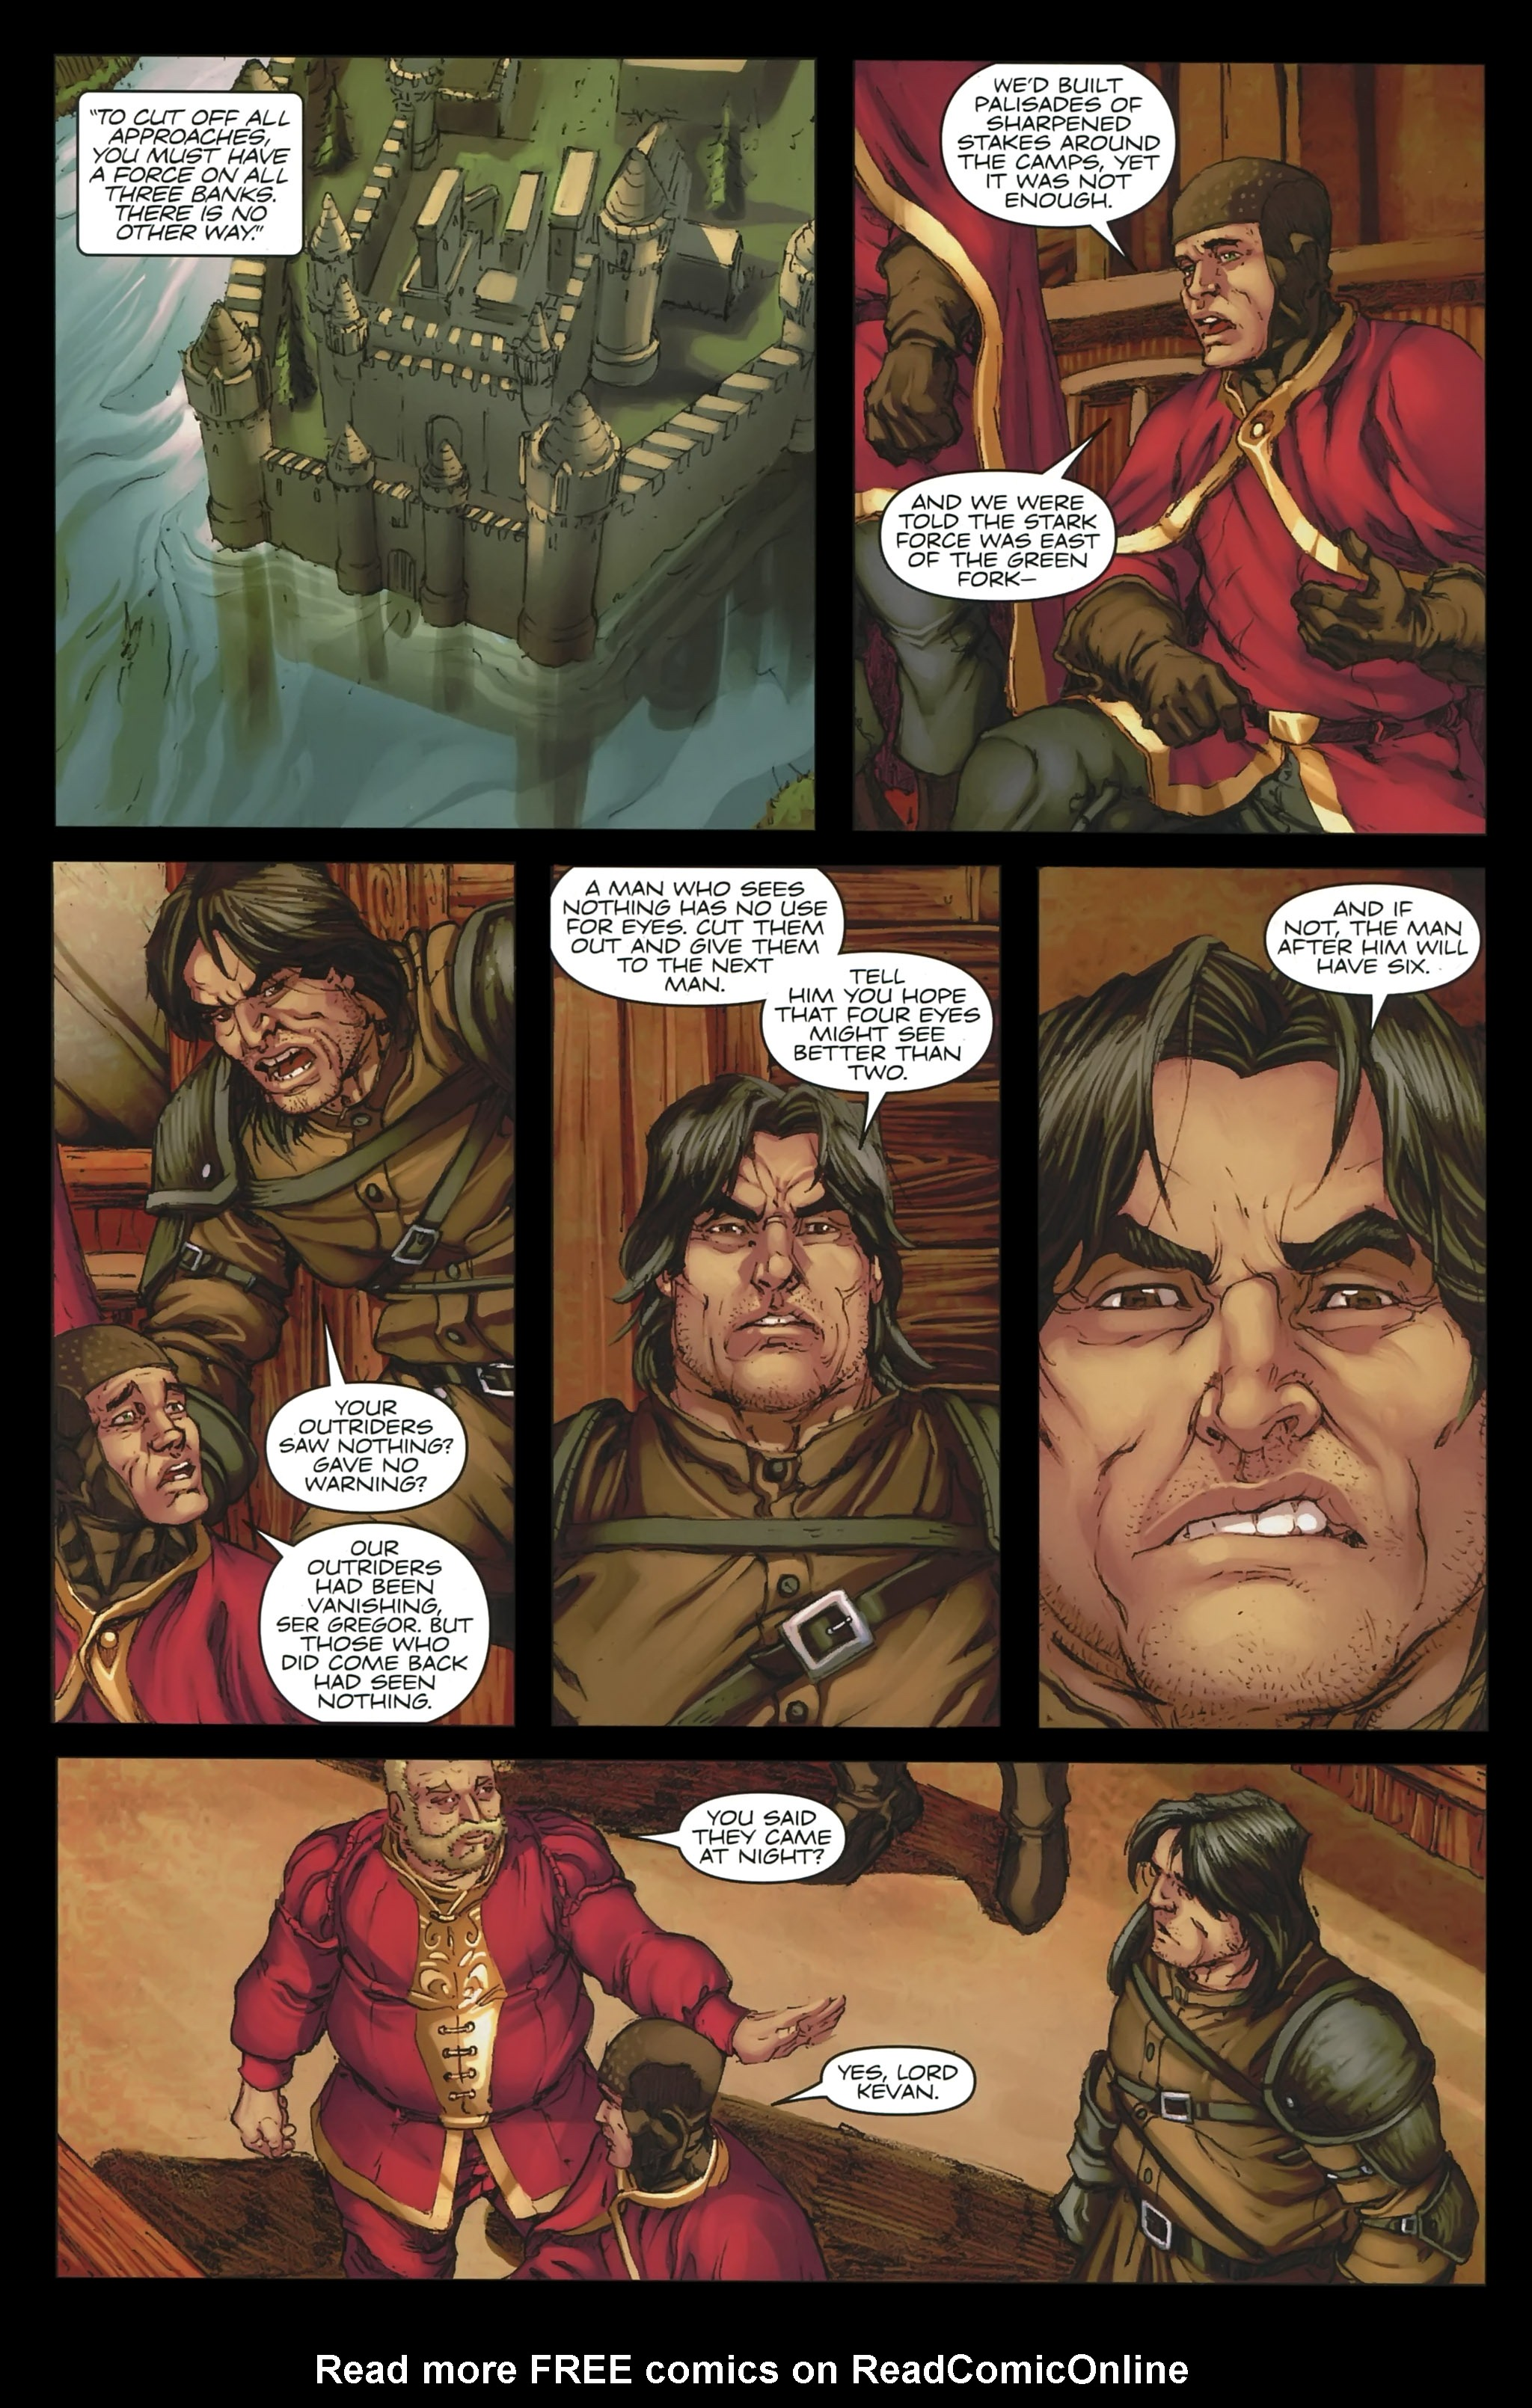 Read online A Game Of Thrones comic -  Issue #23 - 14